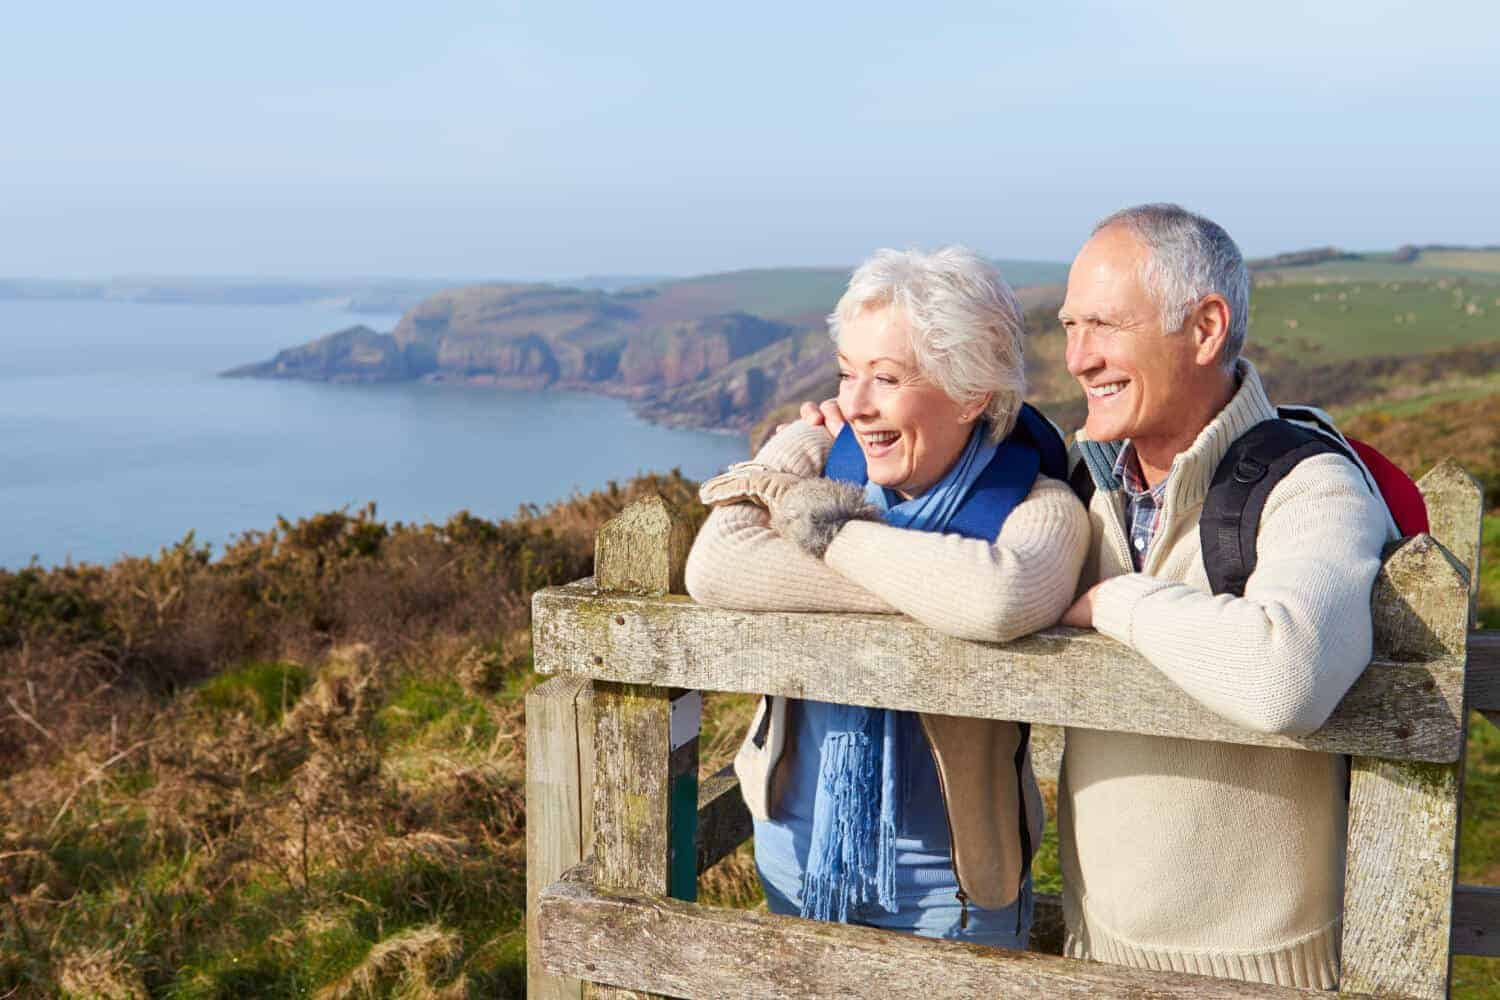 Seniors need financial stability to achieve retirement goals